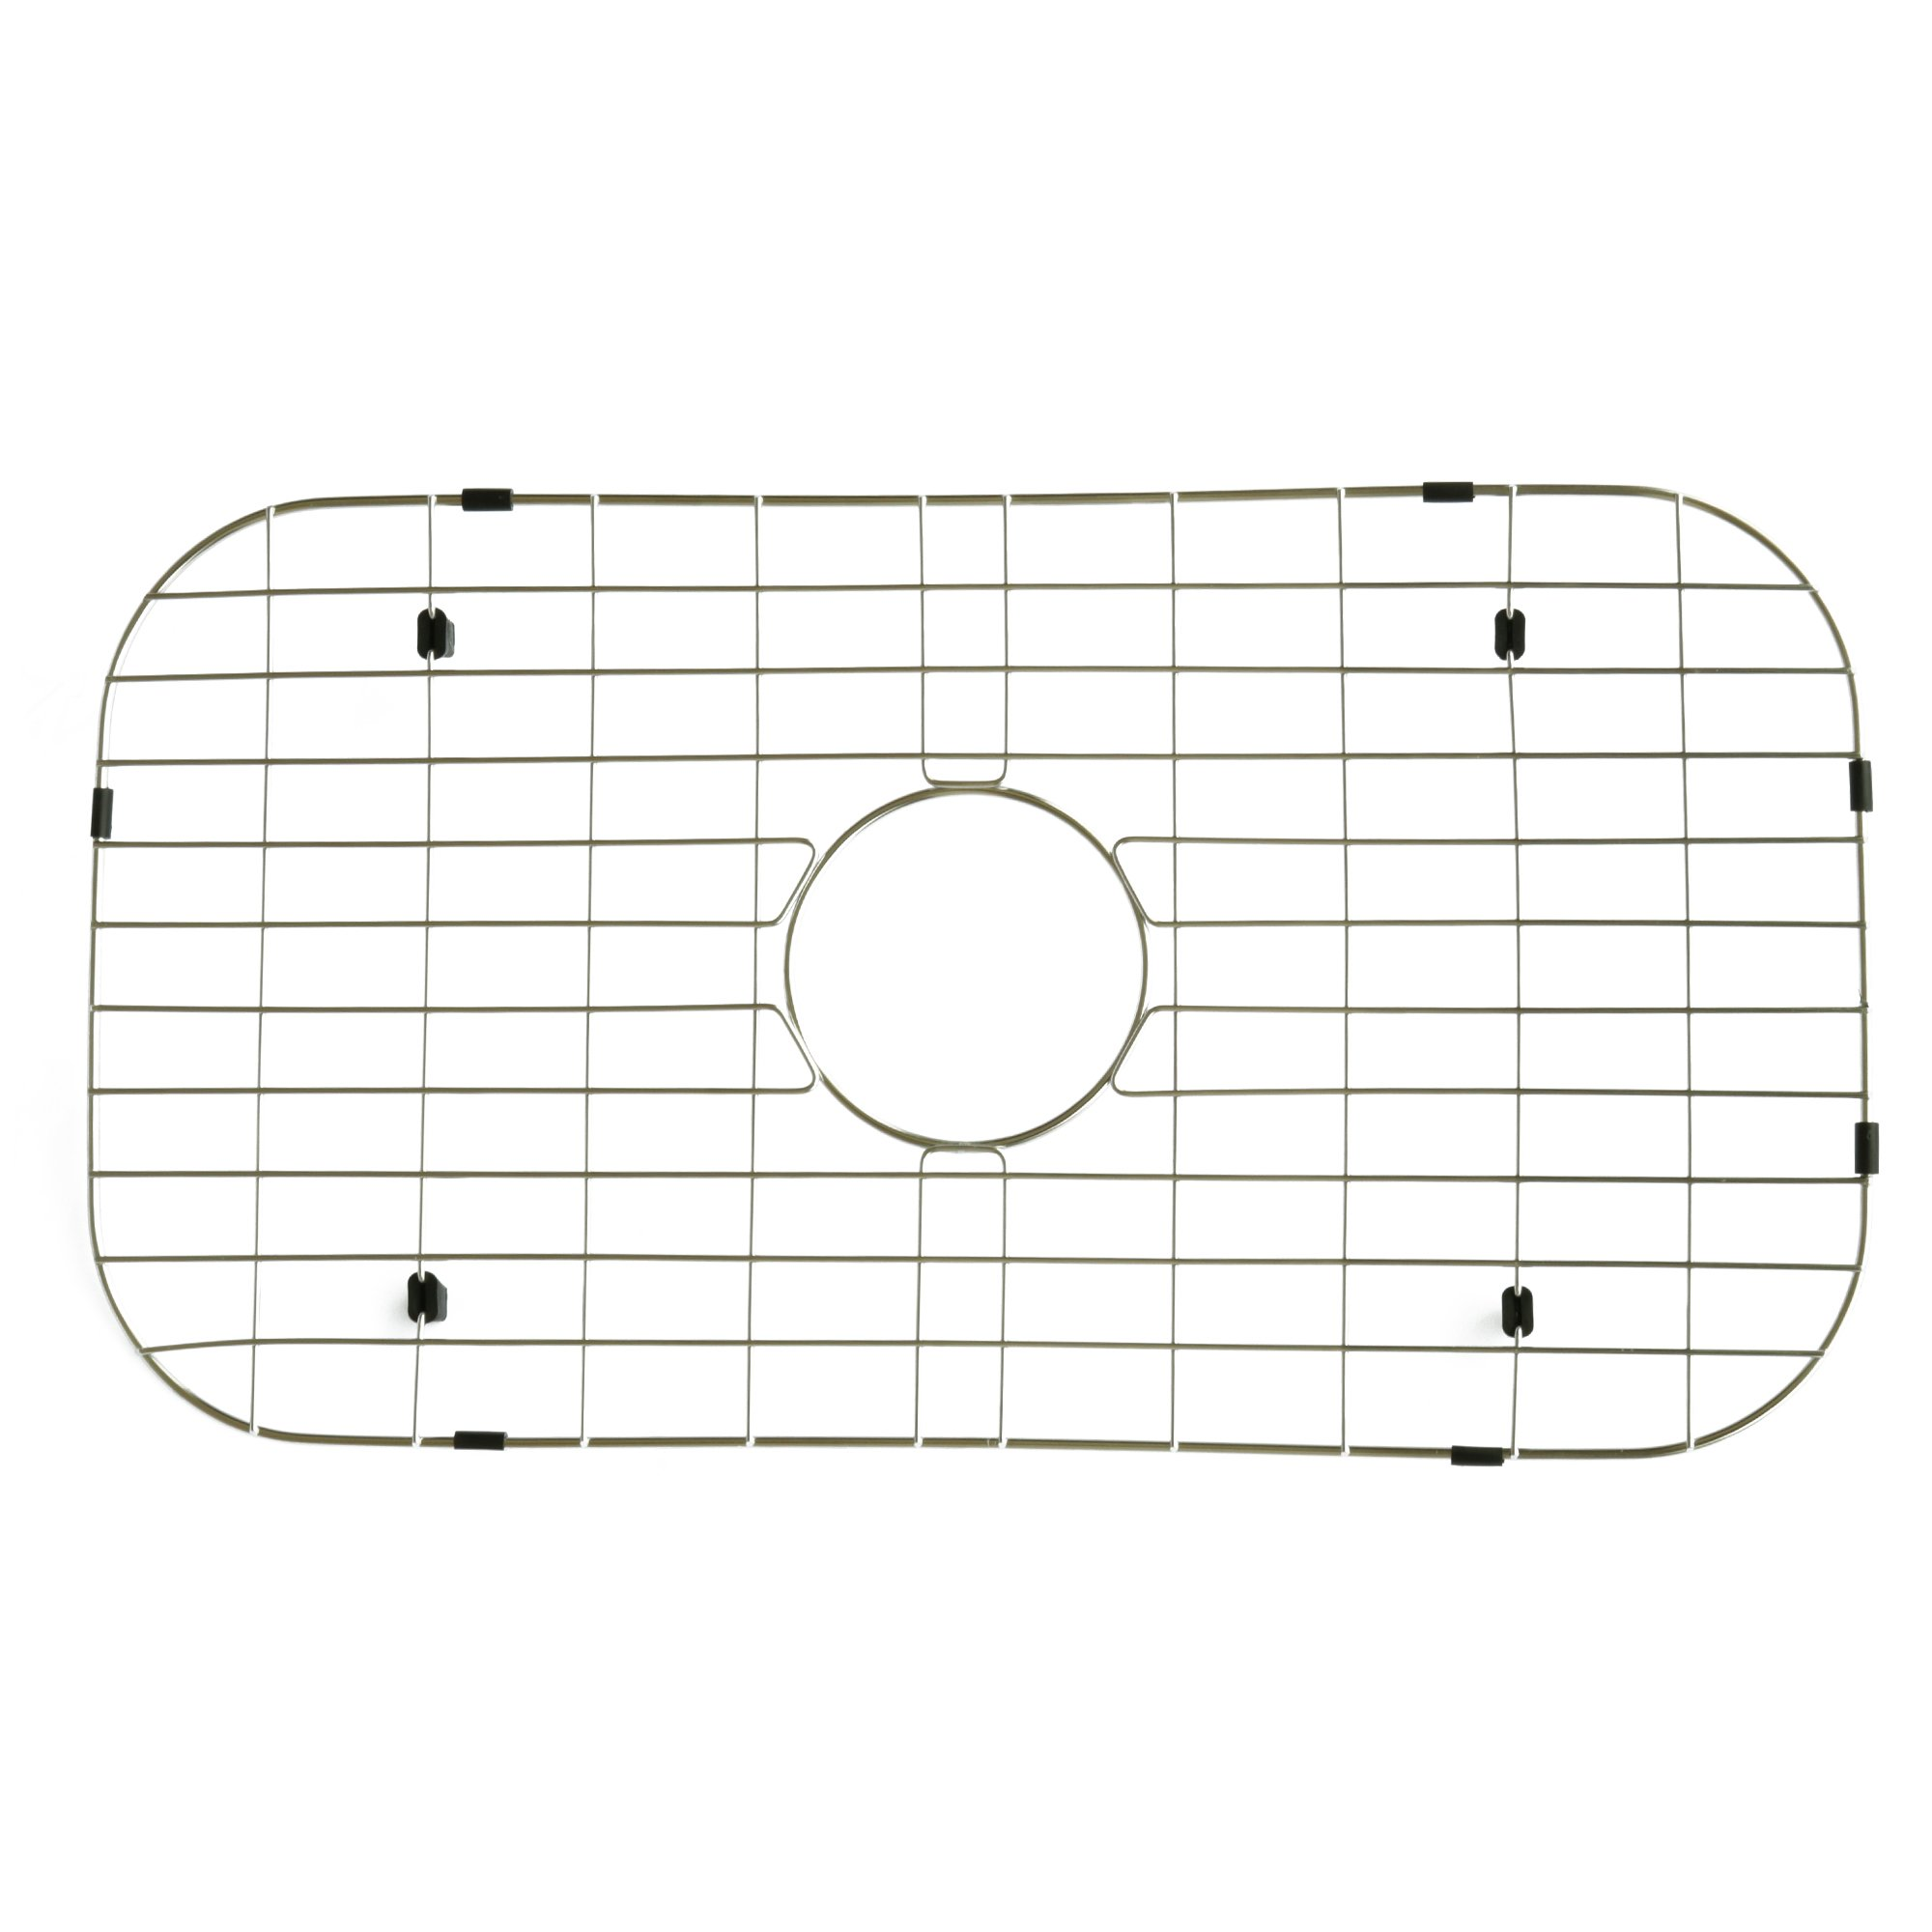 NWC Sink Protector, Metal Grid for Stainless Steel Kitchen Sinks | 26 in X 14 in | Best for Protecting Your Sink by NWC